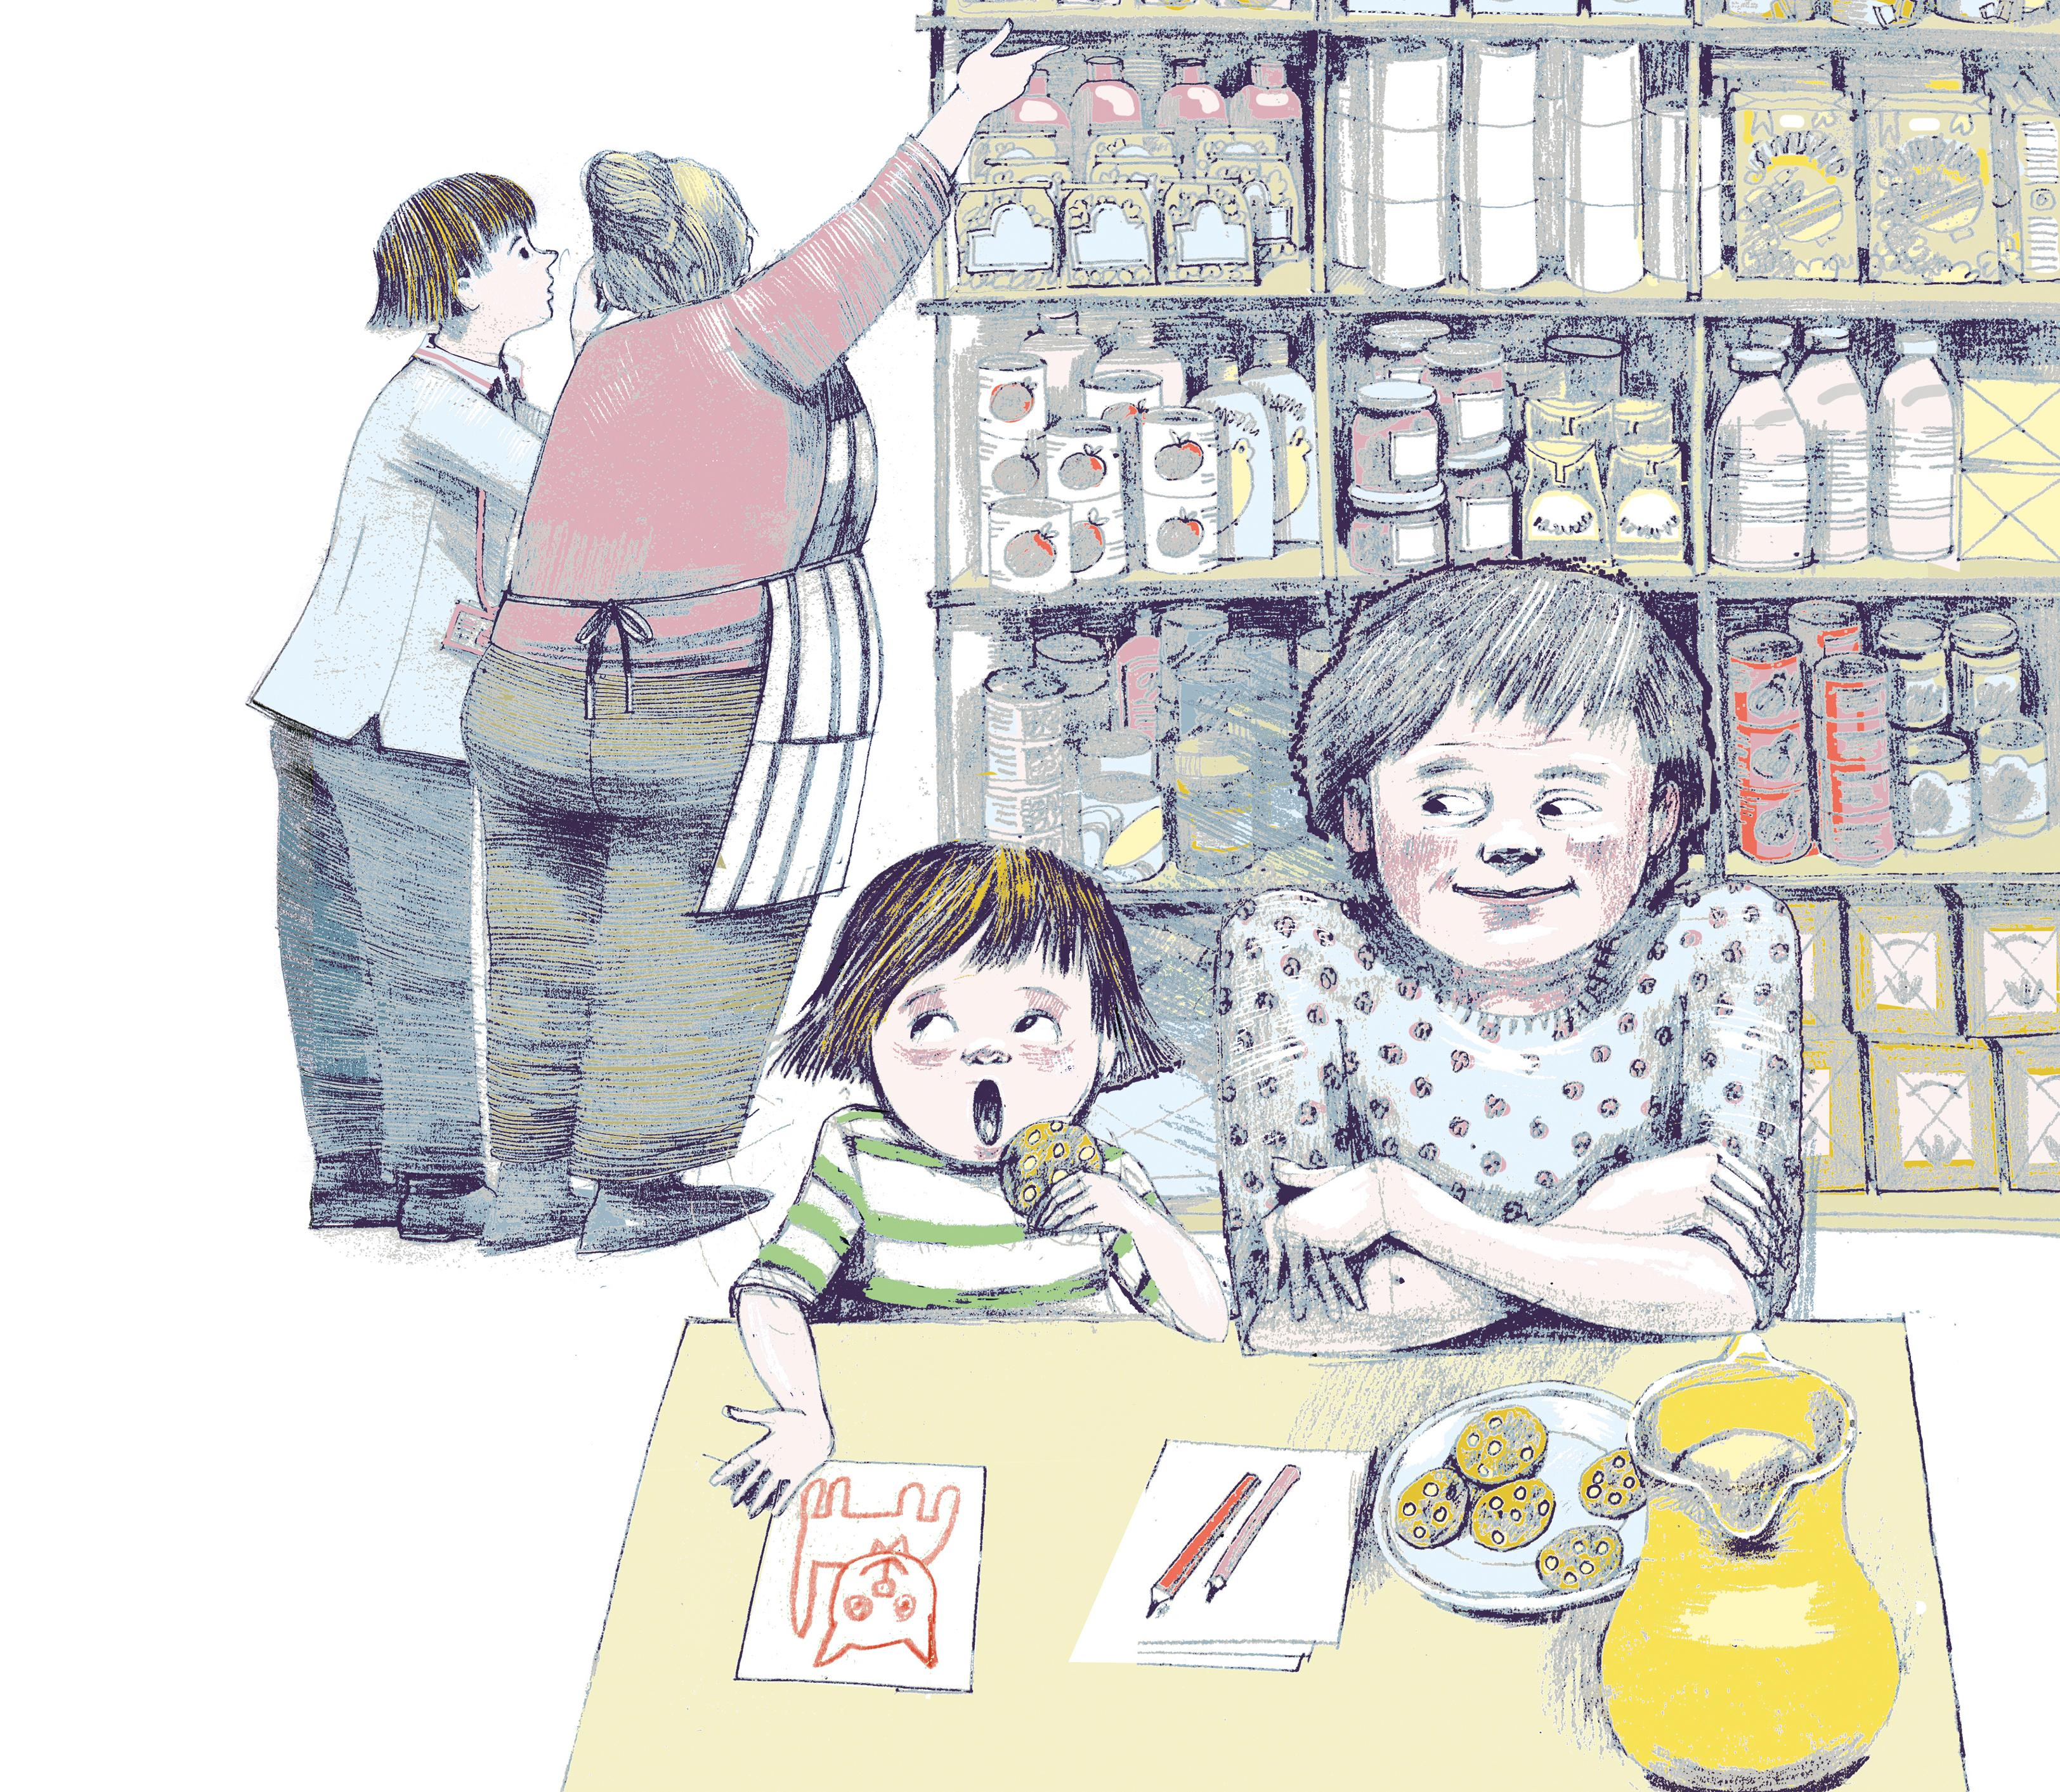 A children's book about food banks is a grim sign of our failure as a society